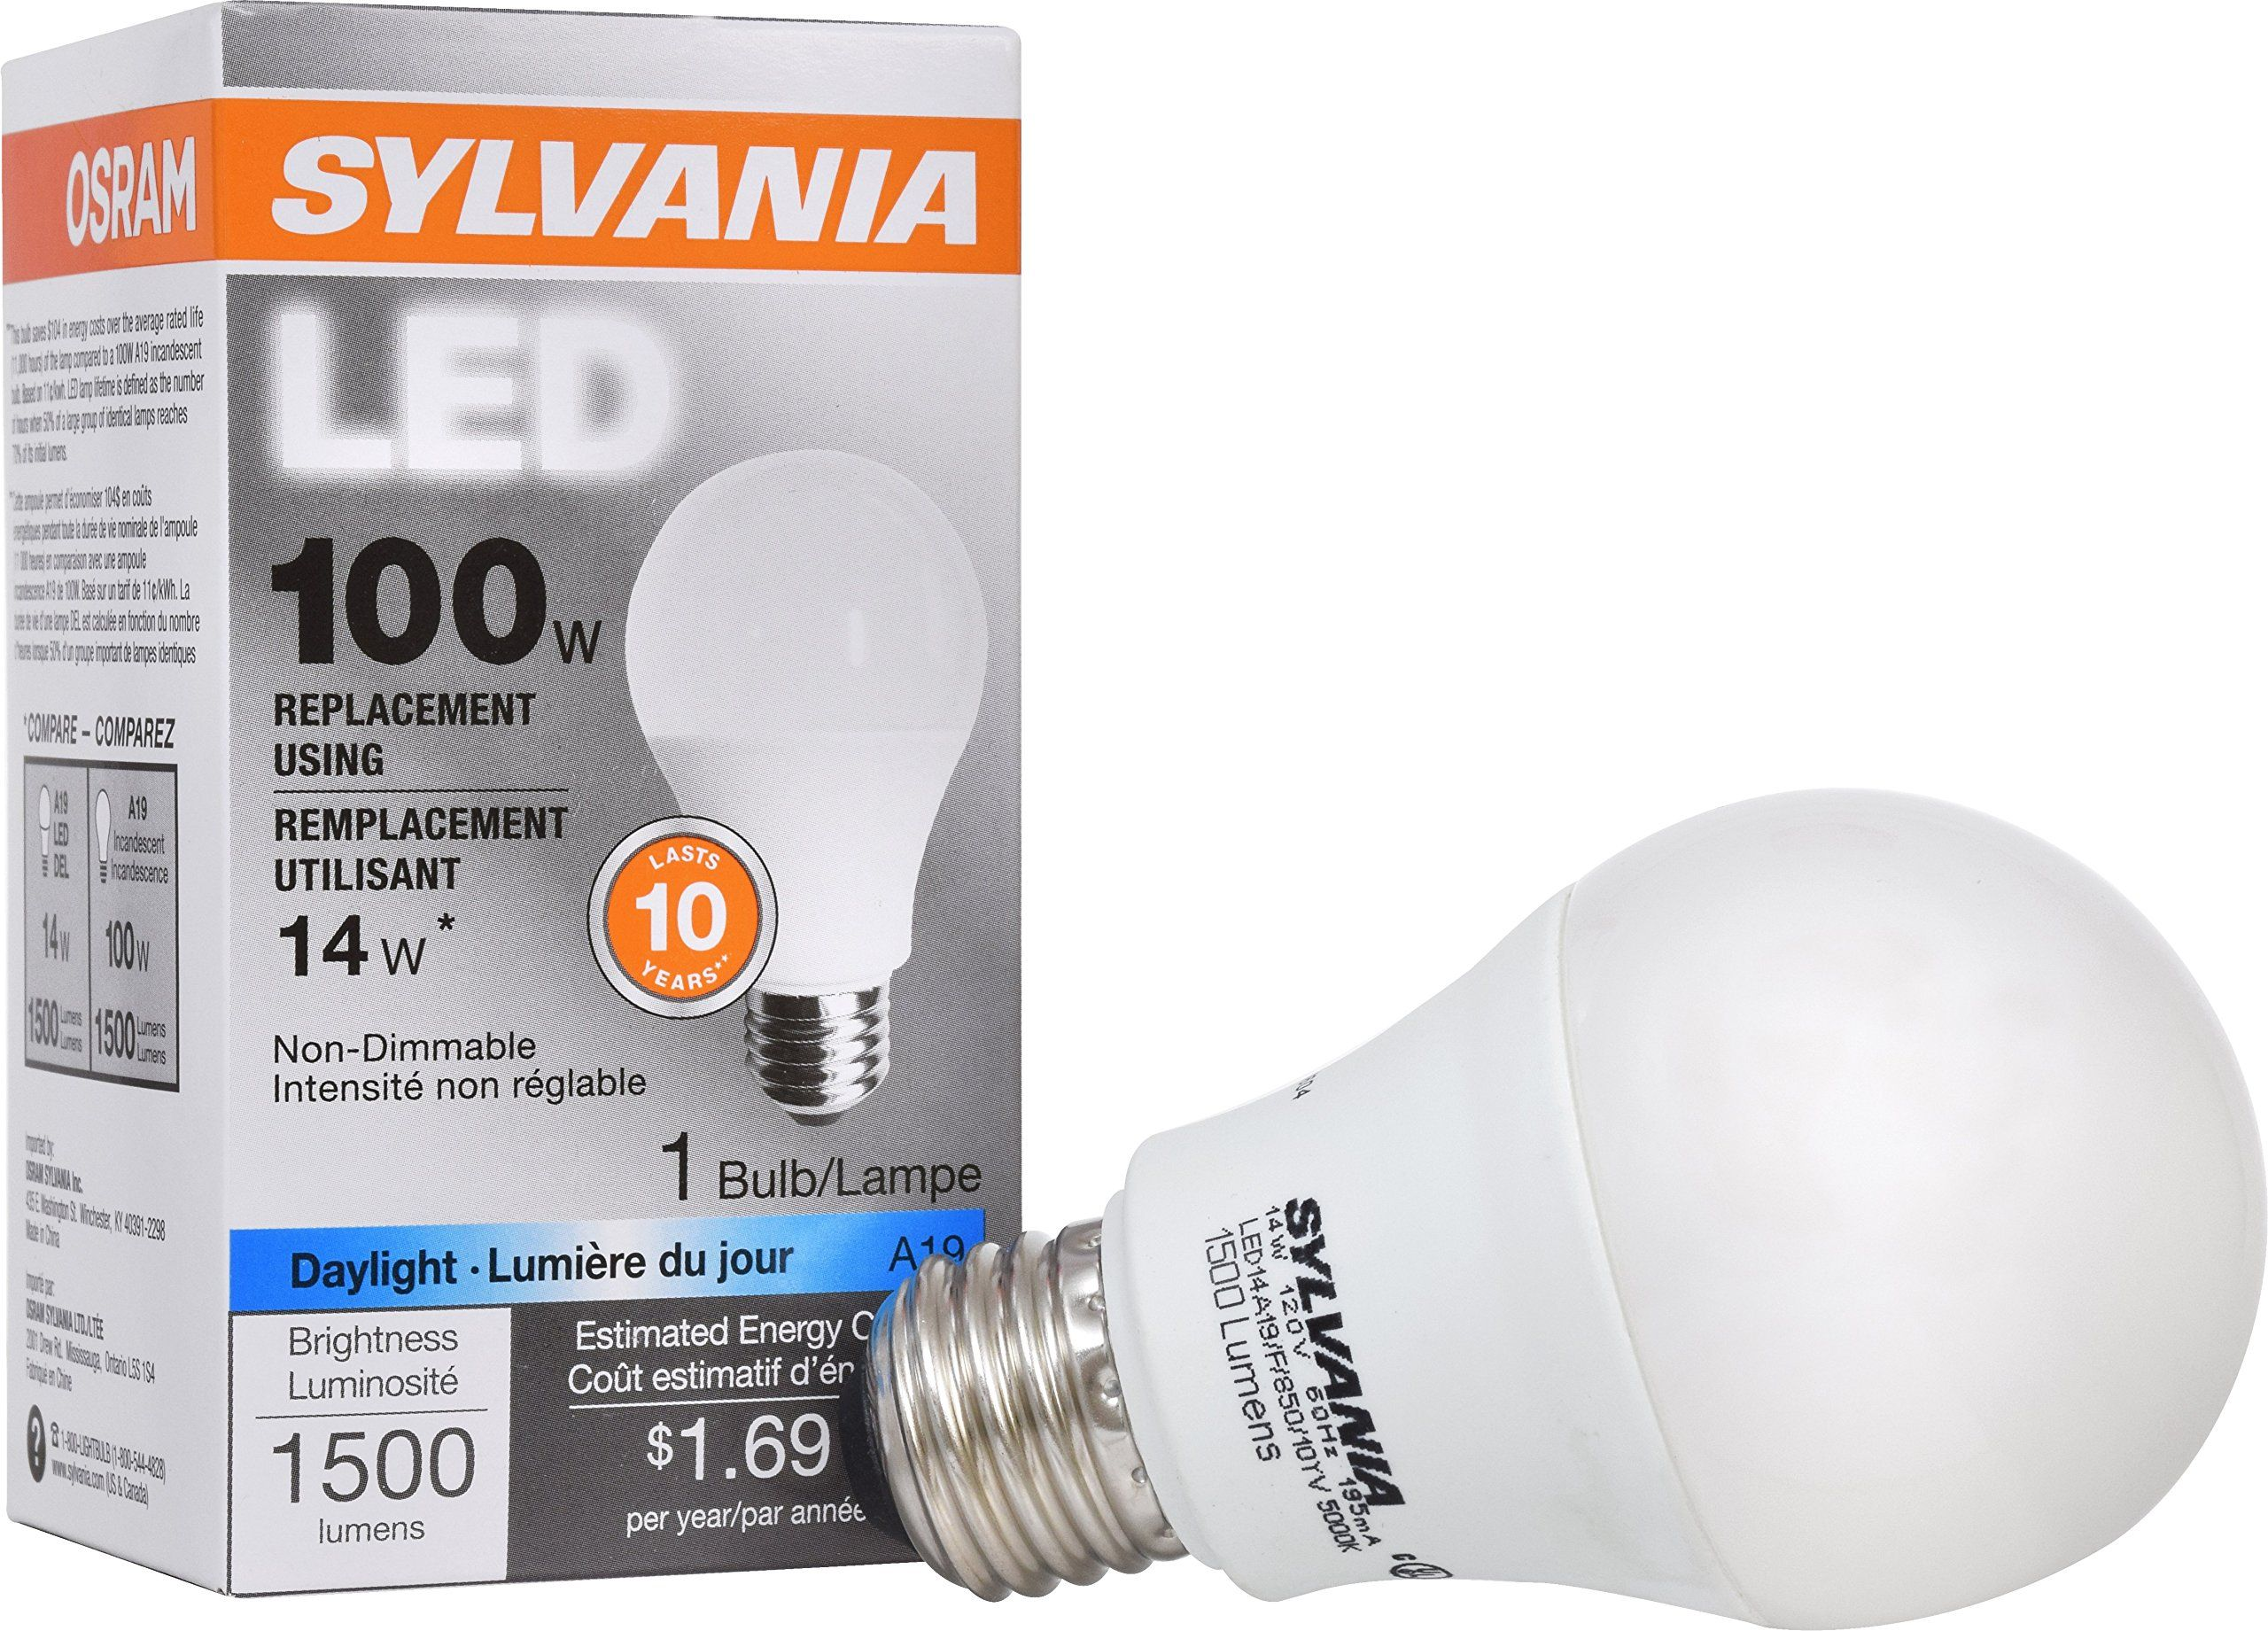 Sylvania 100w Equivalent Led Light Bulb A19 Lamp 1 Pack Daylight Energy Saving Ledlightsideas Dimmable Led Lights Light Bulb Sylvania Led